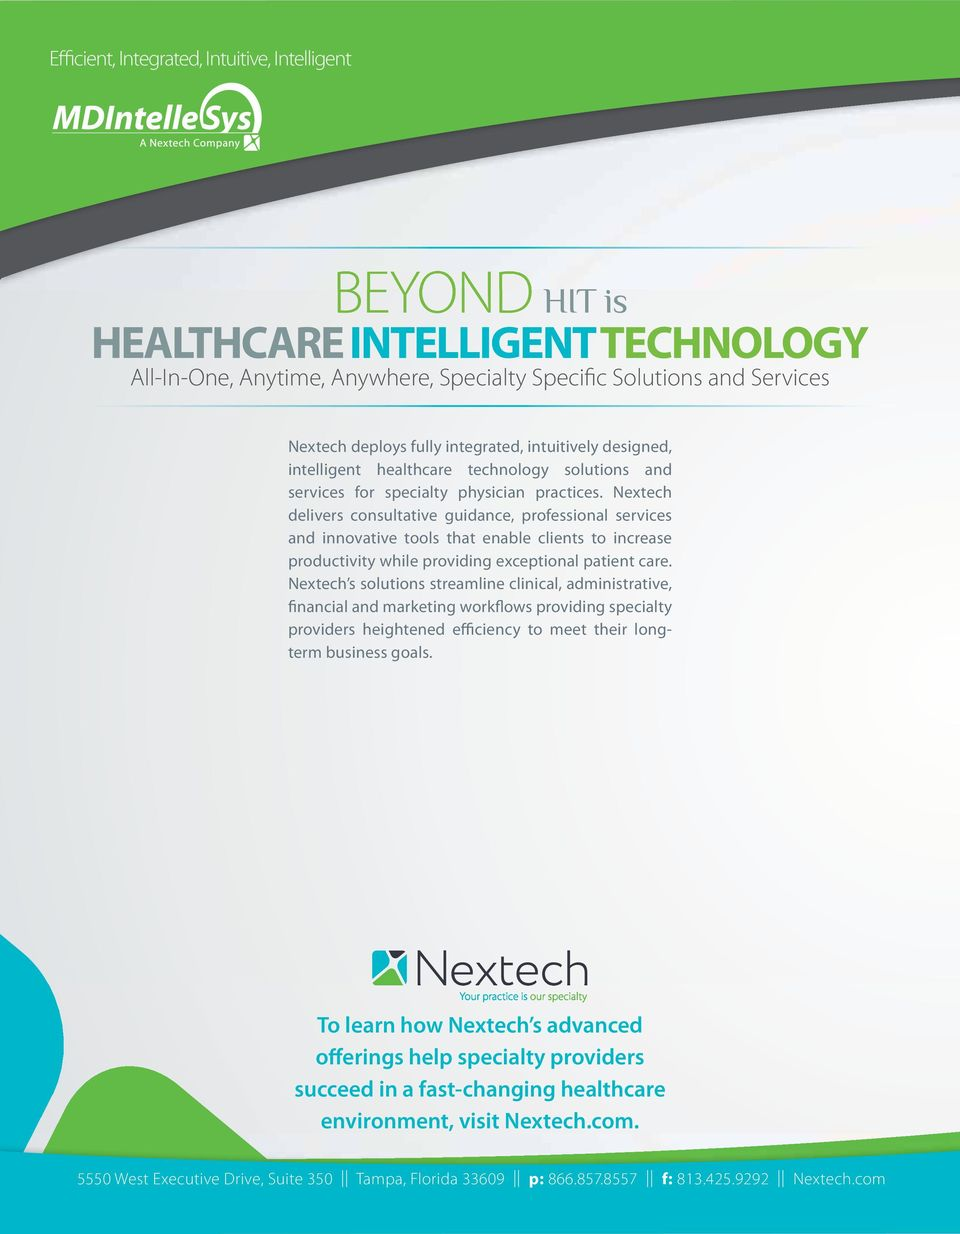 Nextech delivers consultative guidance, professional services and innovative tools that enable clients to increase productivity while providing exceptional patient care.